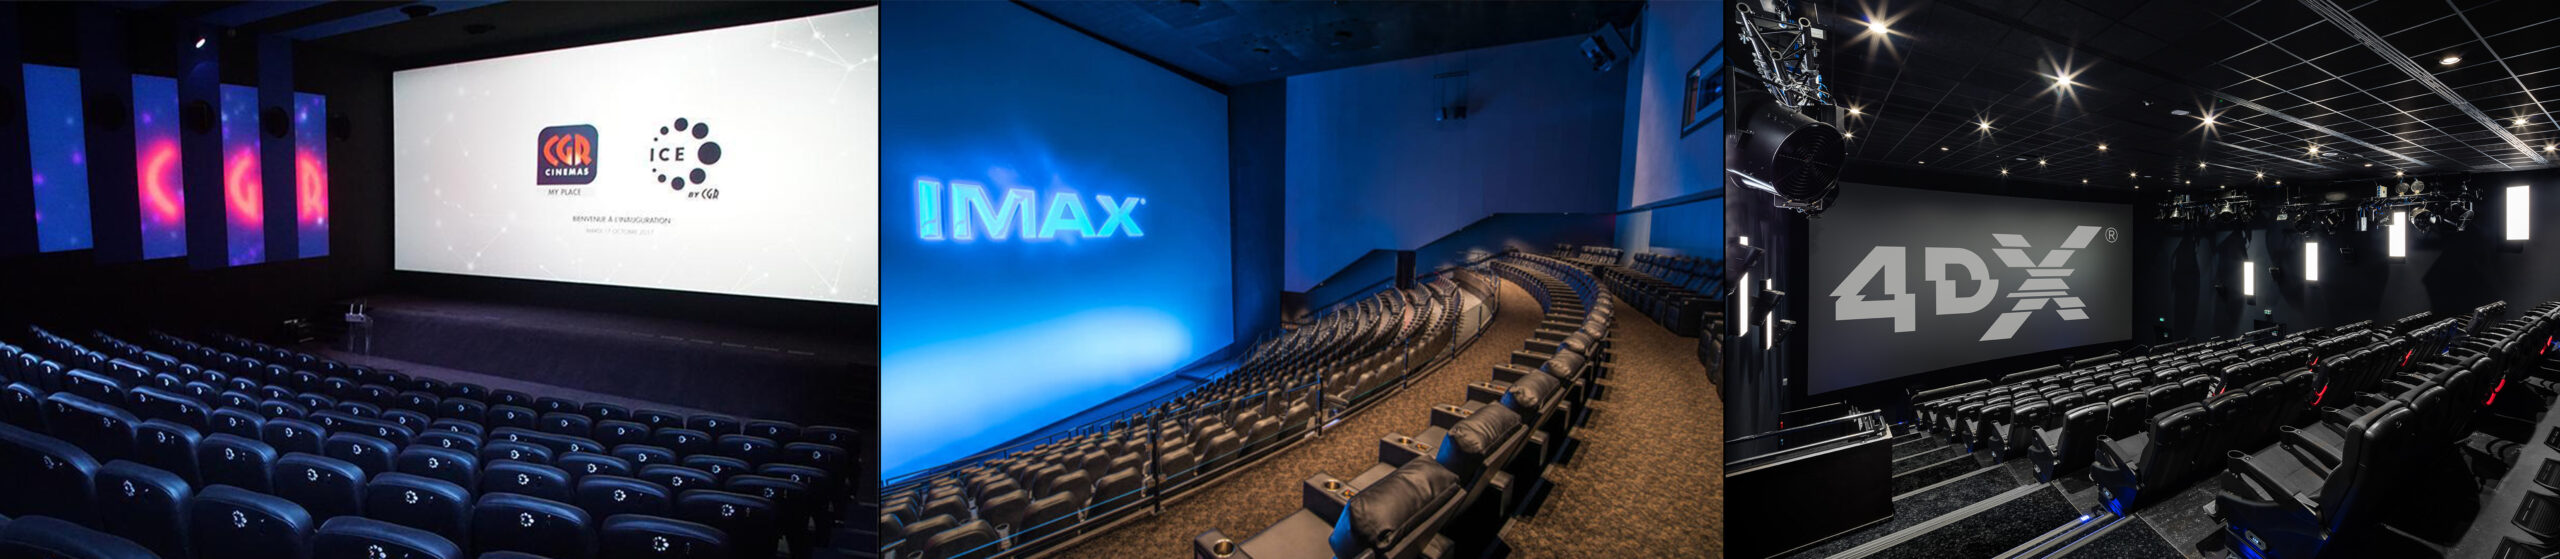 IMAX, ICE, 4DX, kézako ?